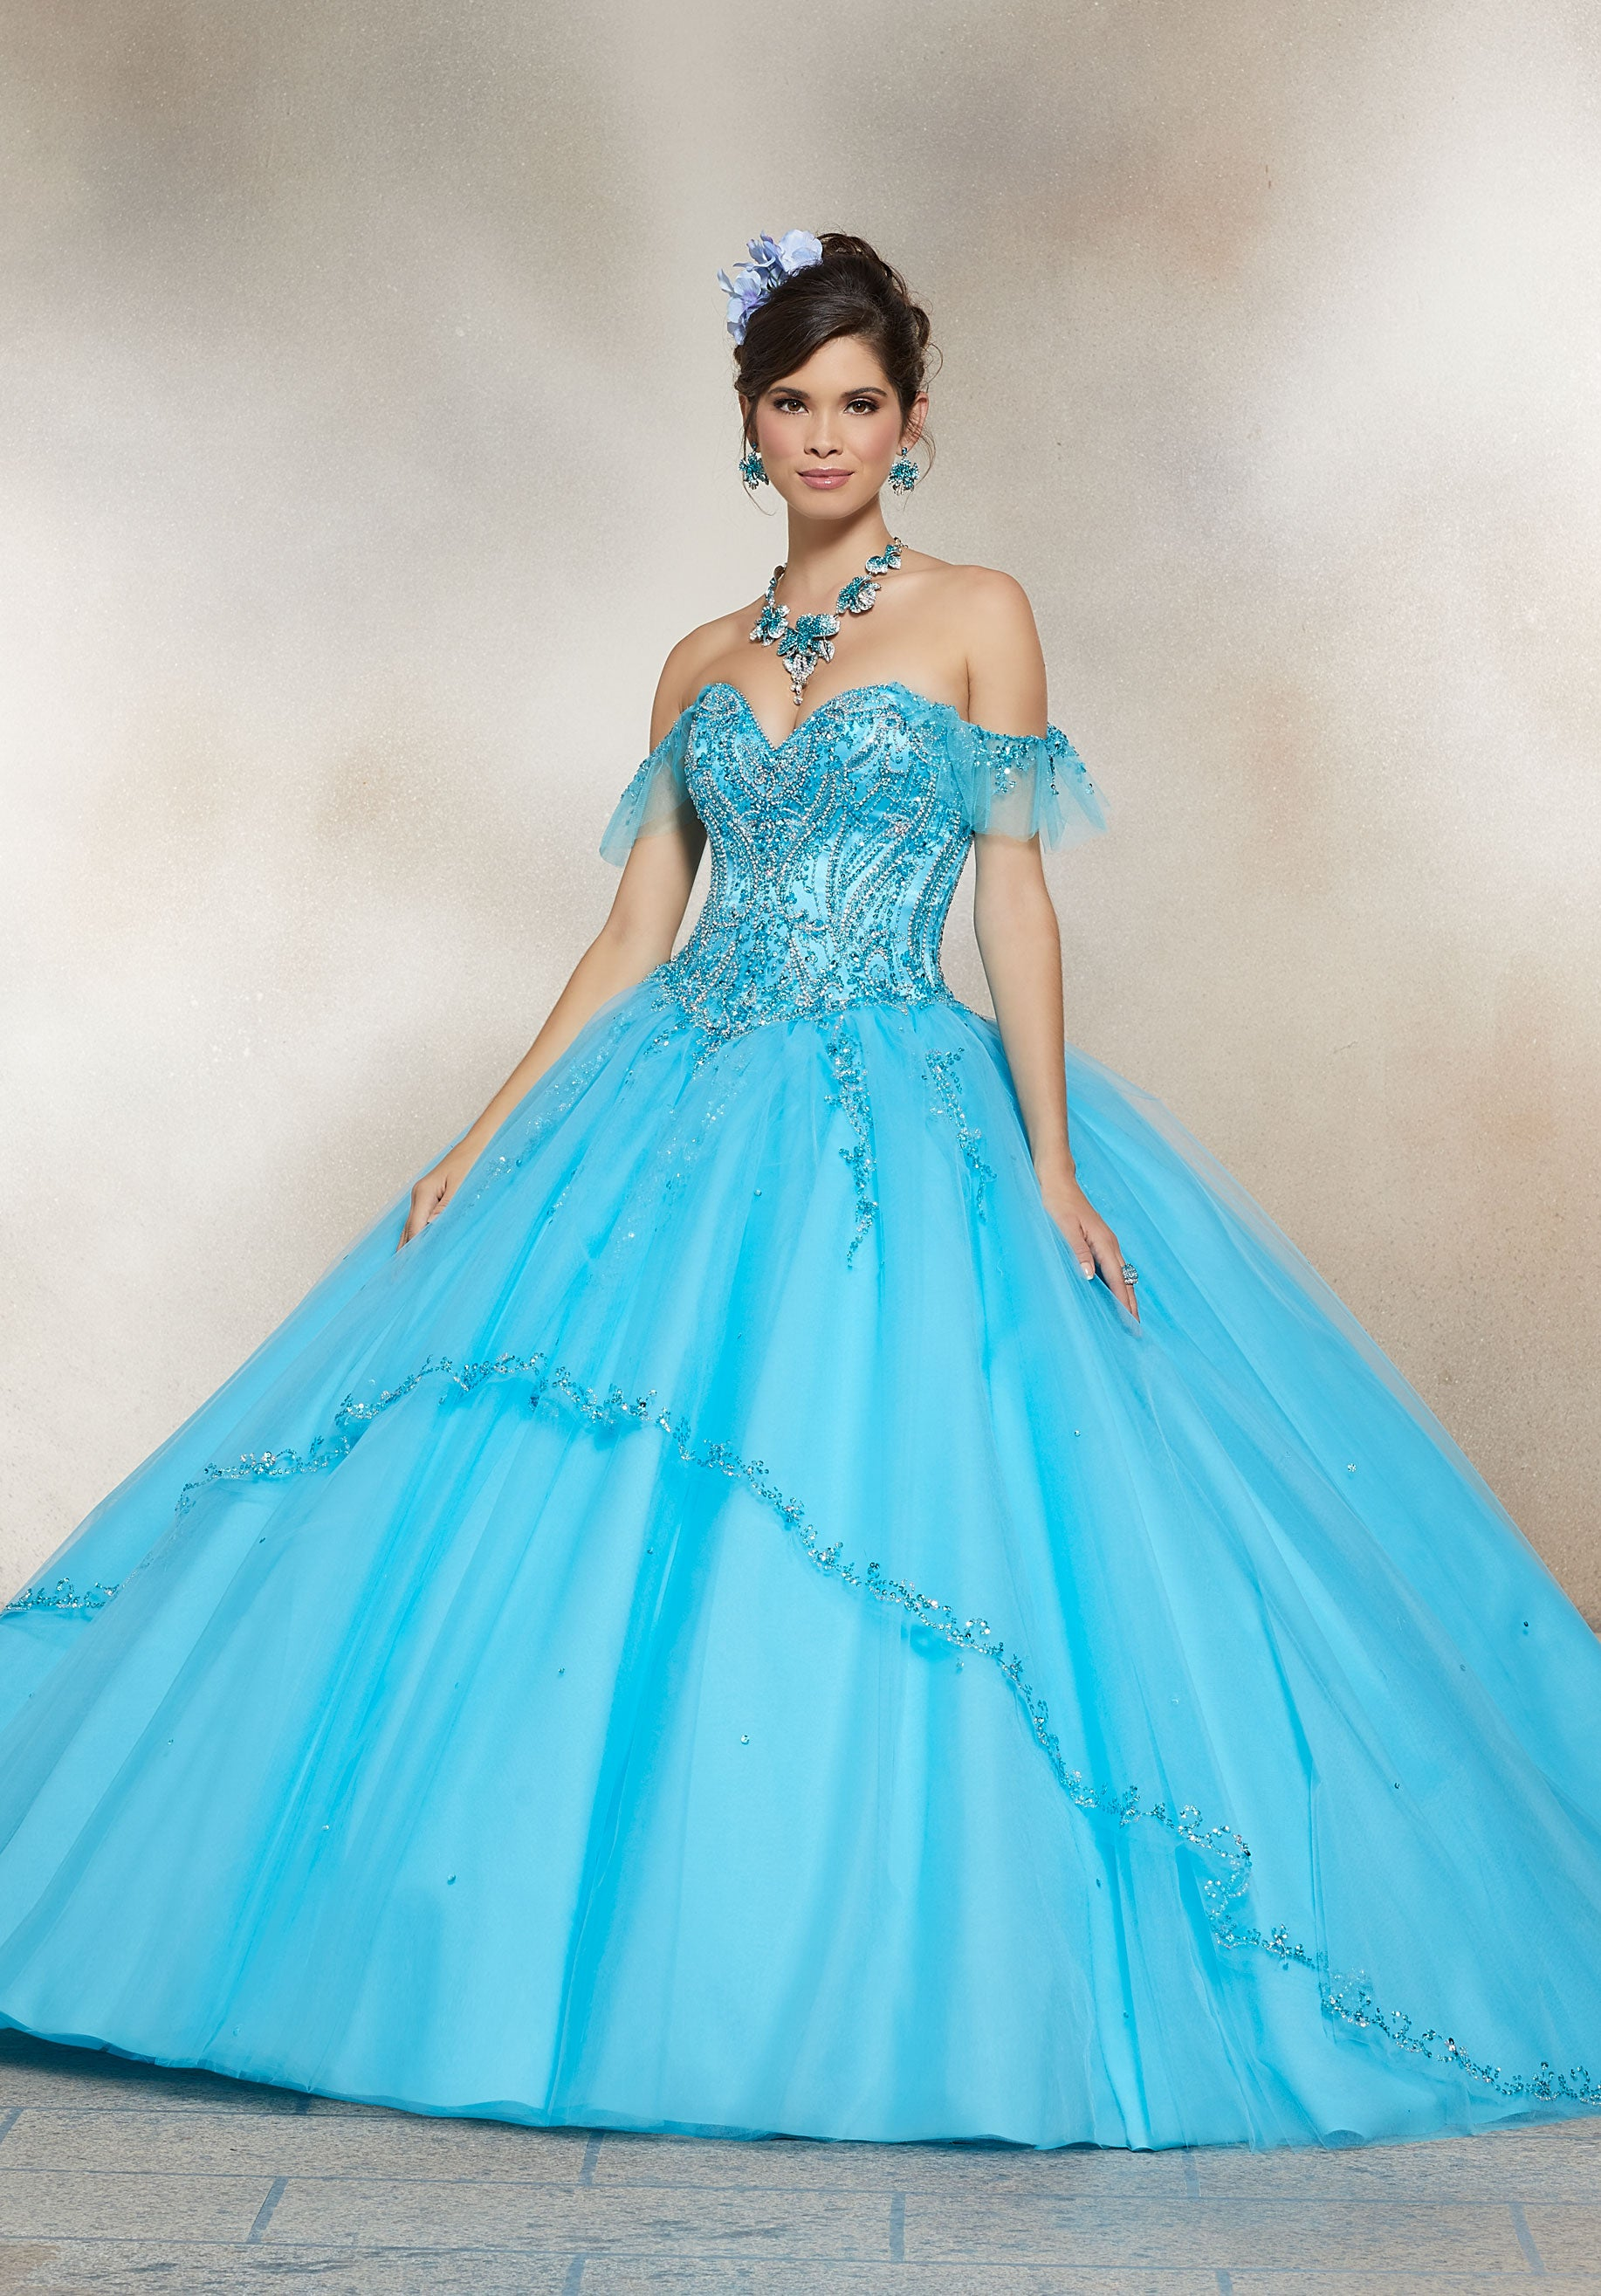 0f3dda005e Aqua Blue And Silver Quinceanera Dresses - Data Dynamic AG